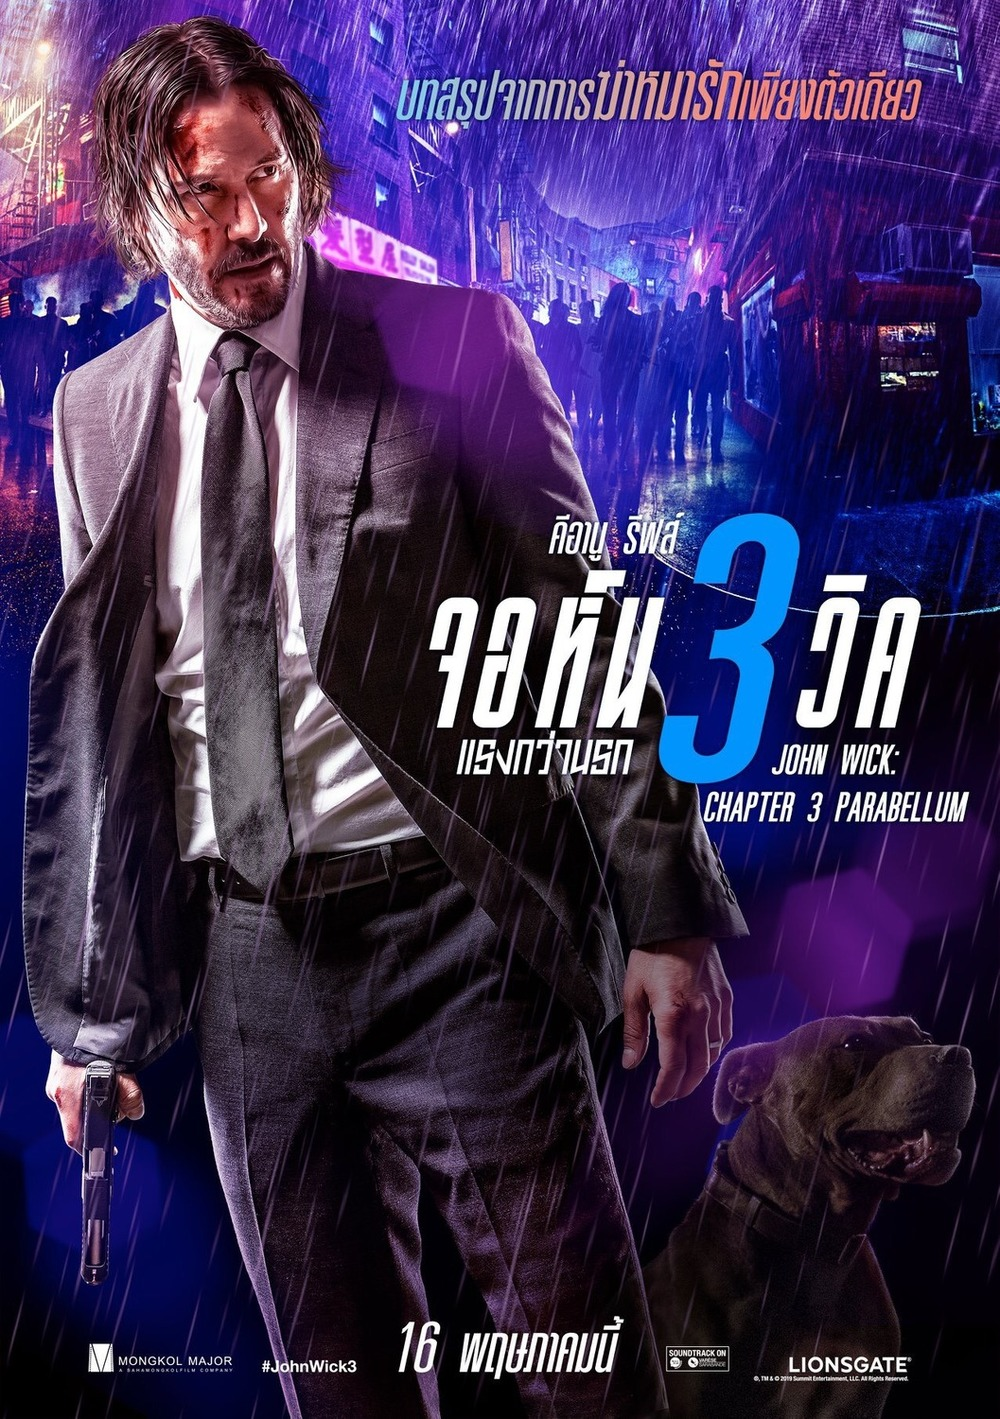 John Wick Chapter 3 Parabellum 2019 (24) JOHN WICK - Videos Poll